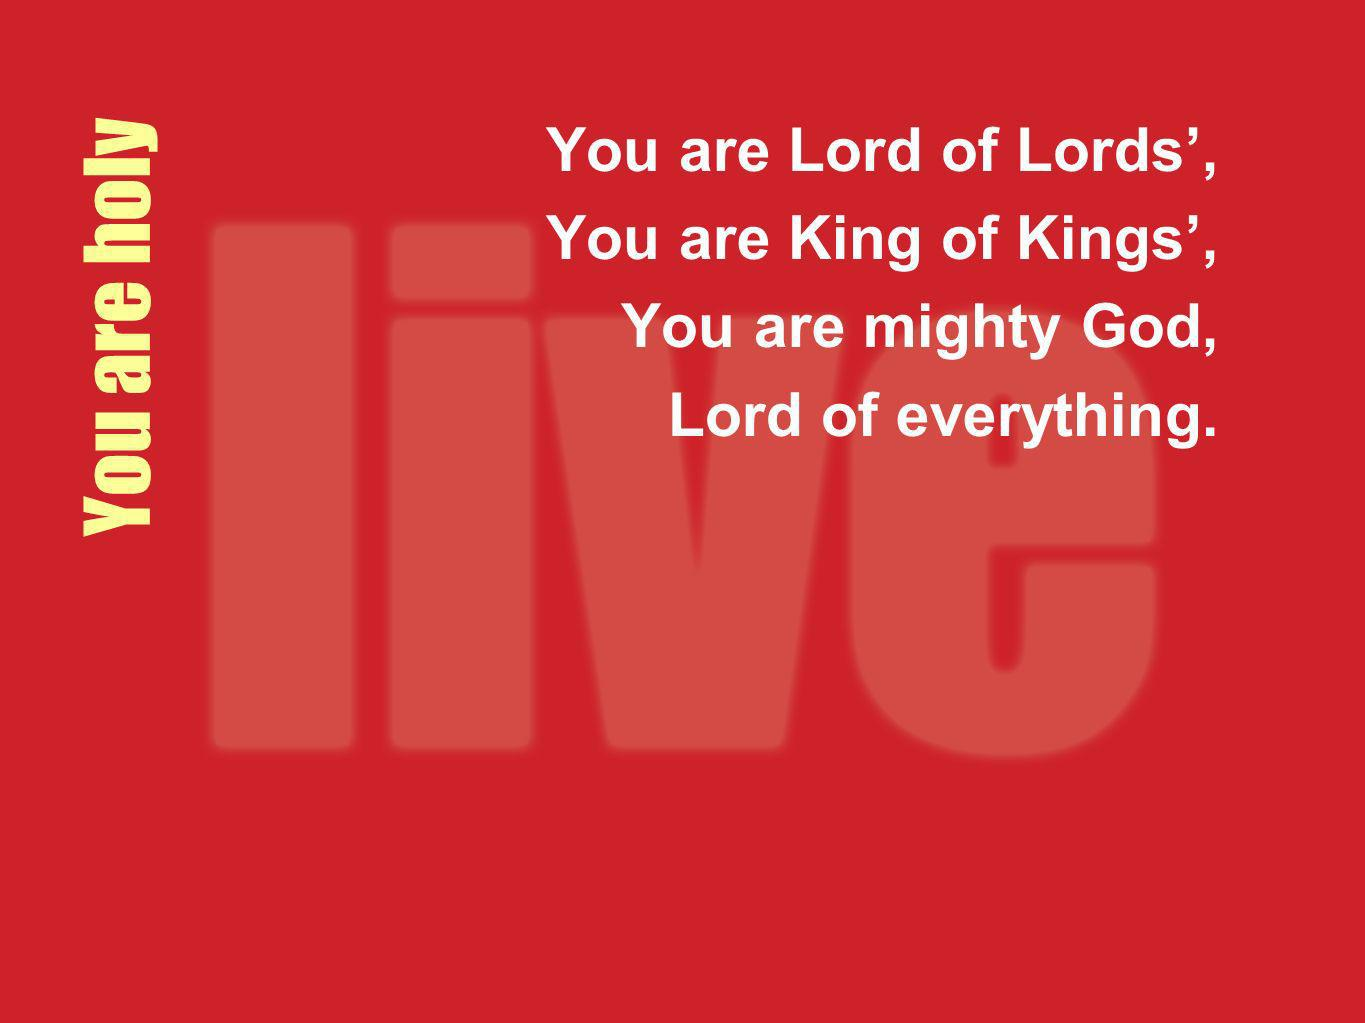 You are holy You are Lord of Lords', You are King of Kings',